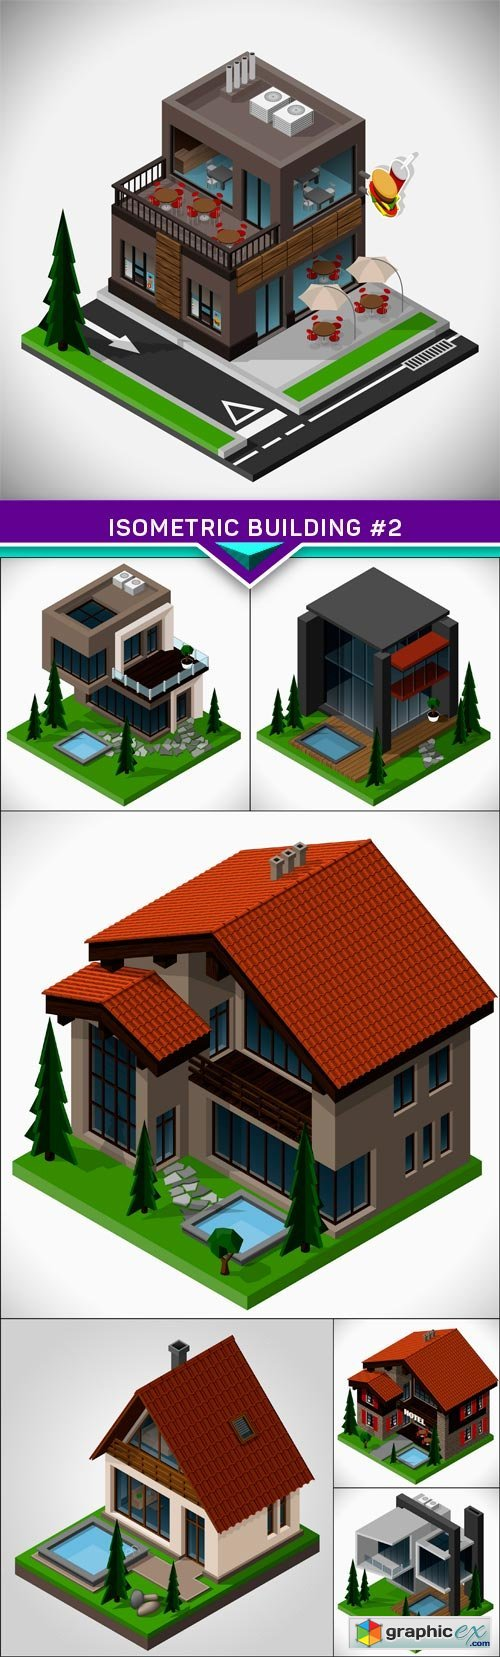 Isometric building #2 7X EPS